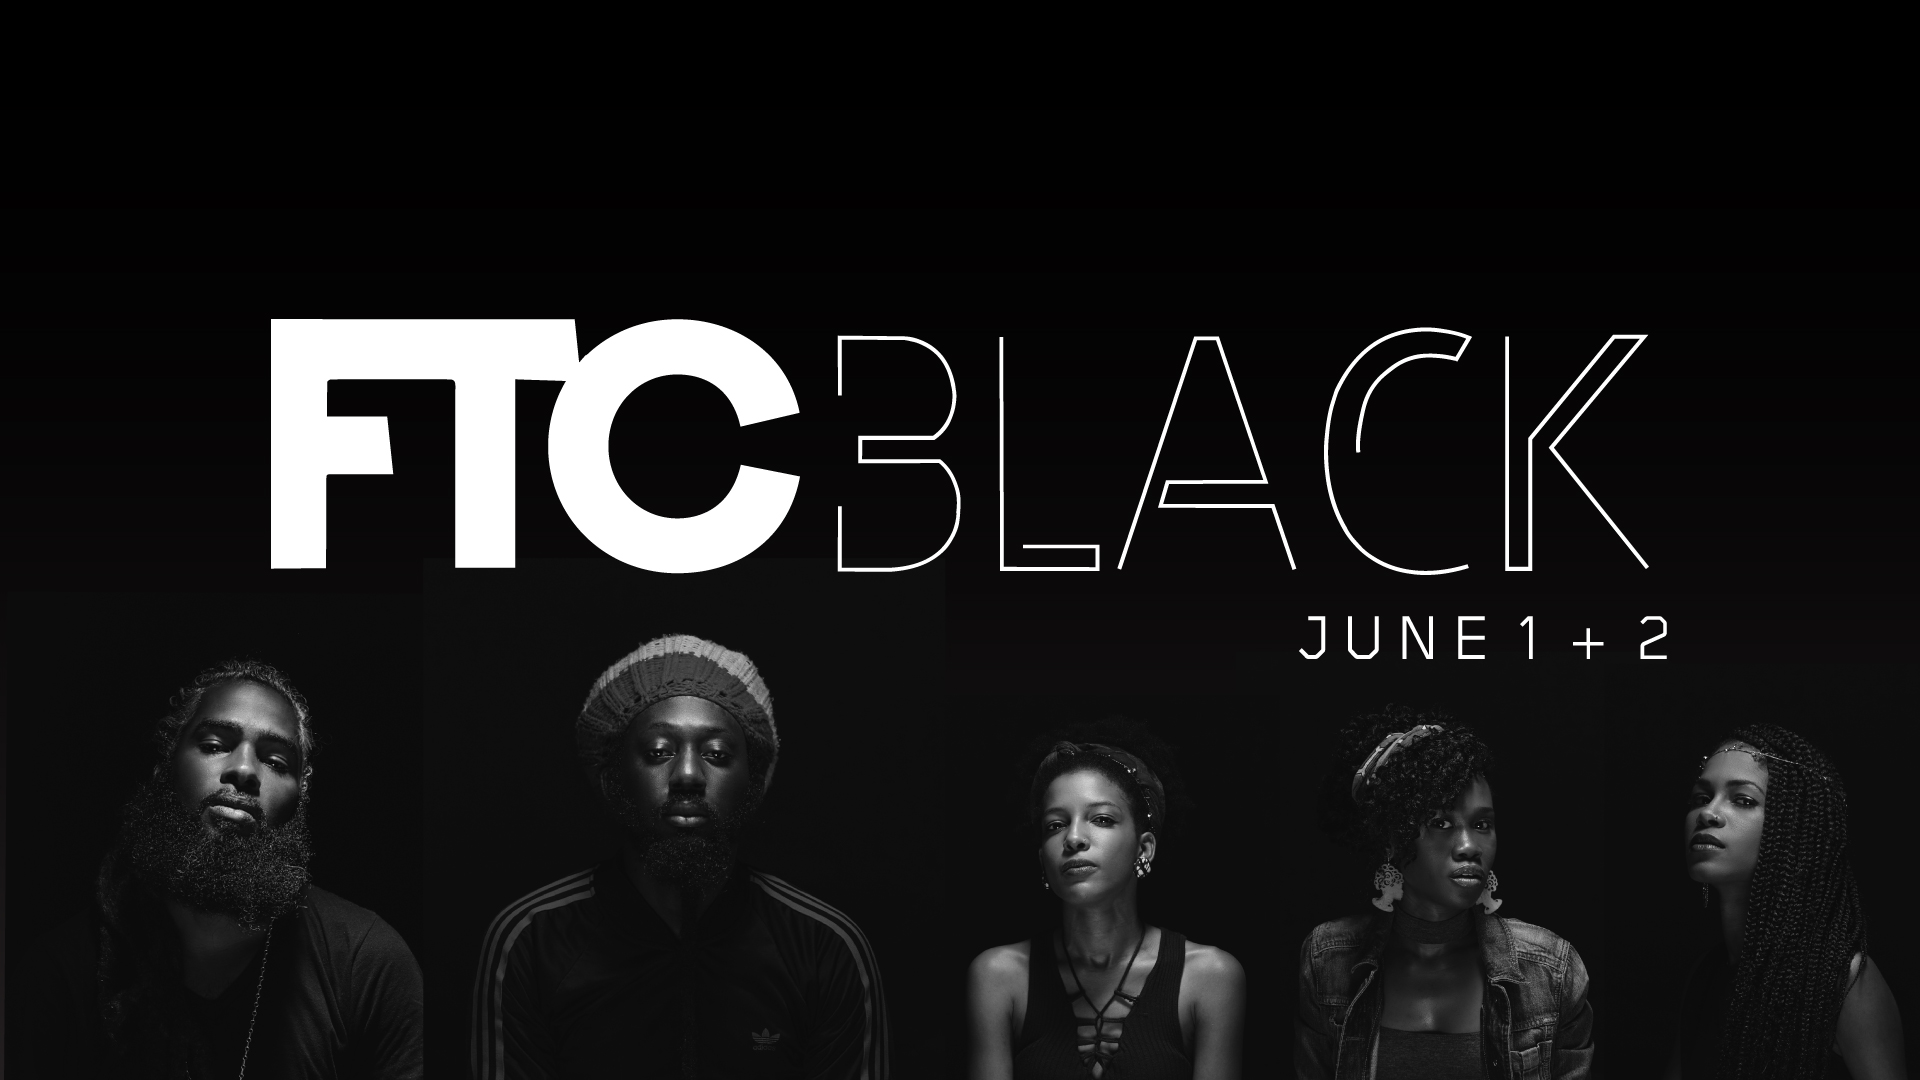 FTC-Black-Band-Event-Cover.jpg